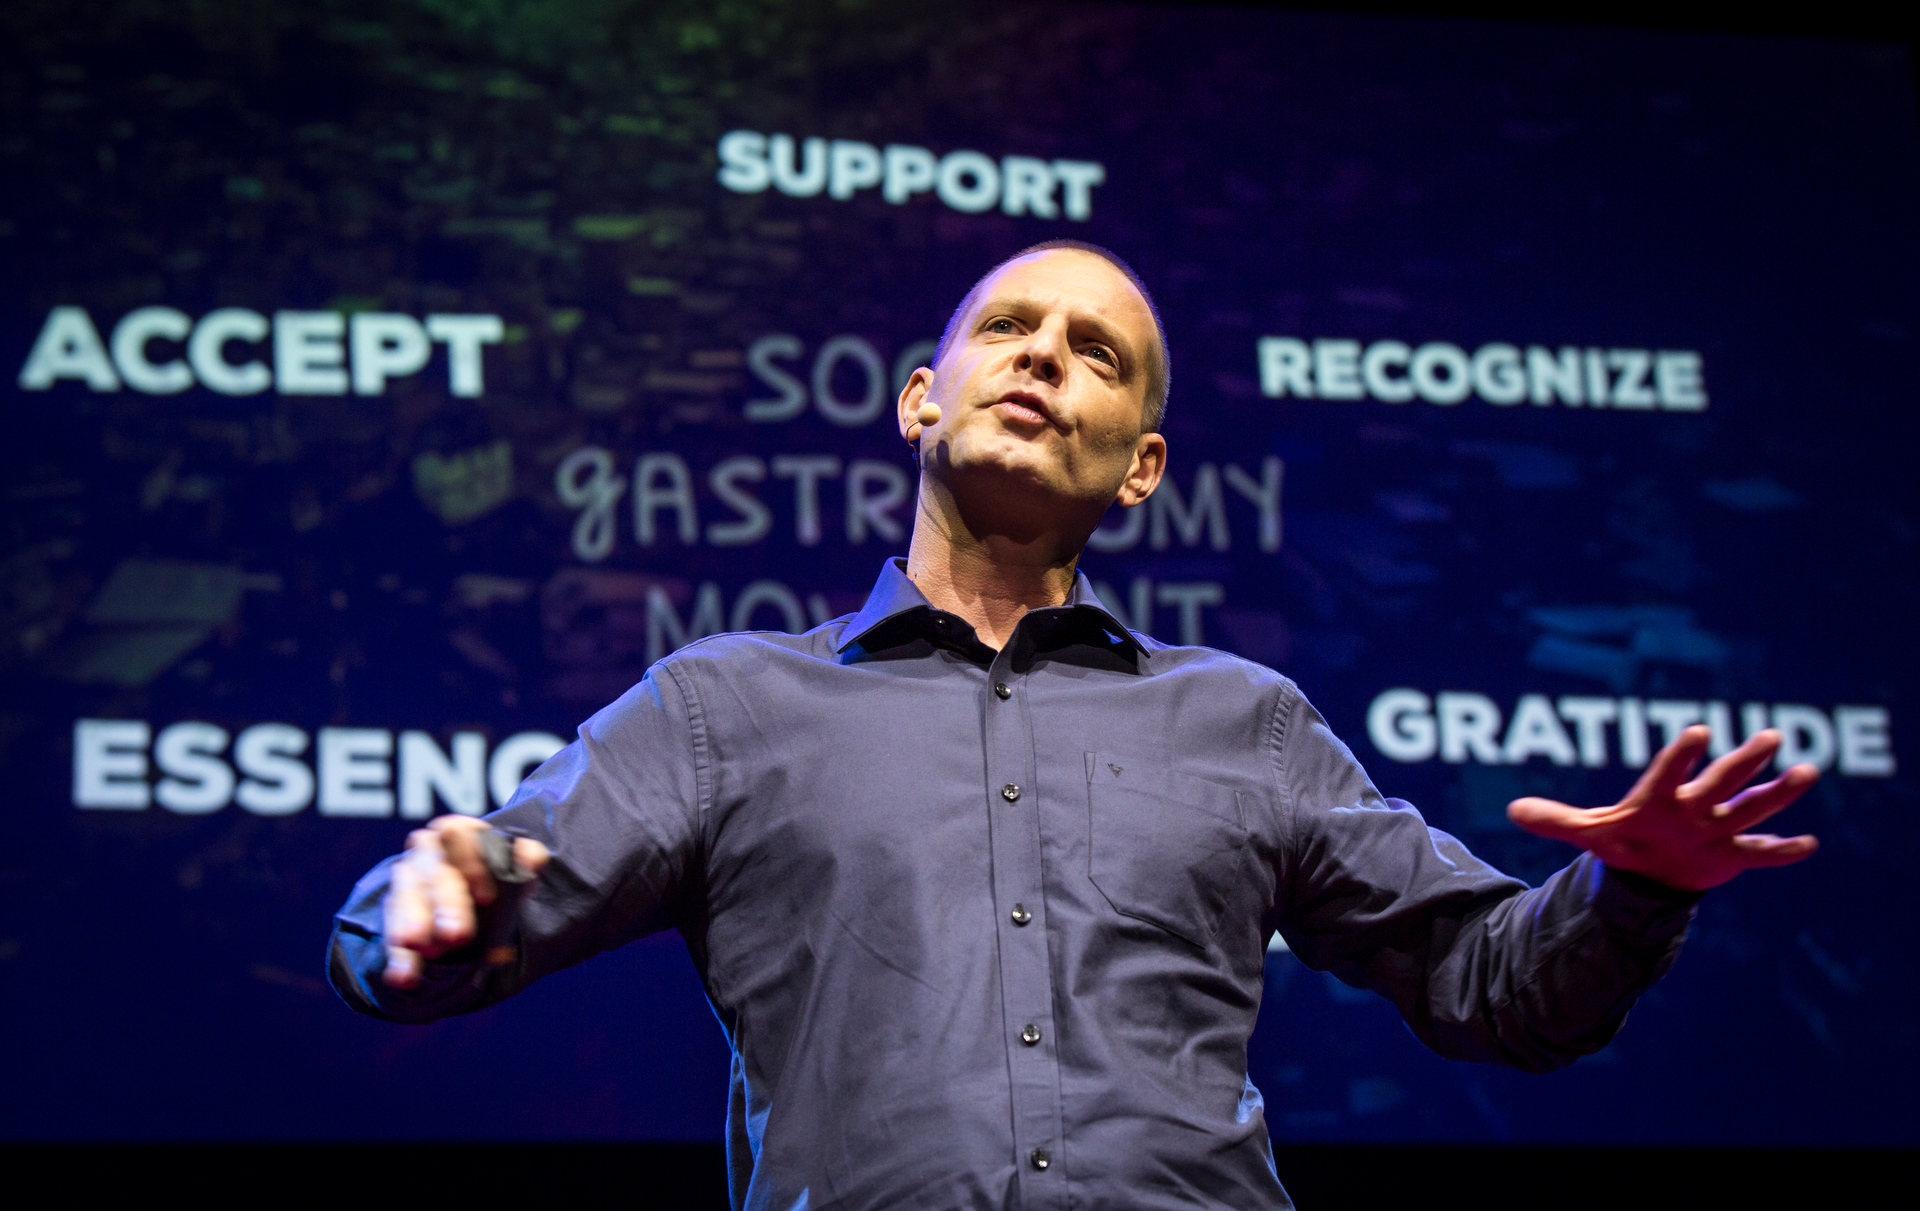 David Hertz on the power of food to transform millions of lives through empowerment, social development, values and skills. Fellows session 2, TED2015 - Truth and Dare, March 16-20, 2015, Kay Meek Center, West Vancouver, Canada. Photo: Ryan Lash/TED